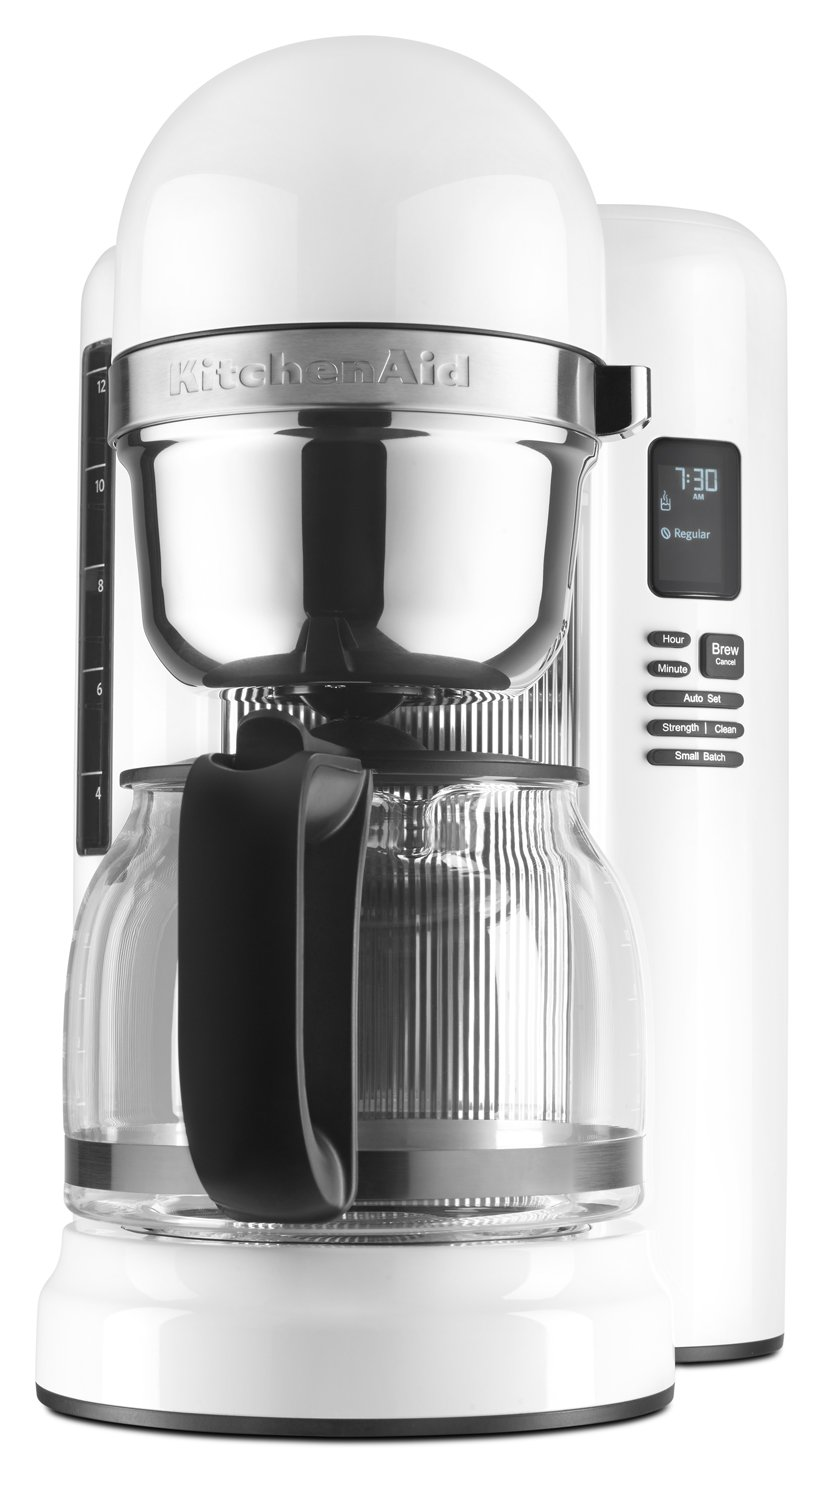 mr coffee 12 cup programmable coffee maker knx manual